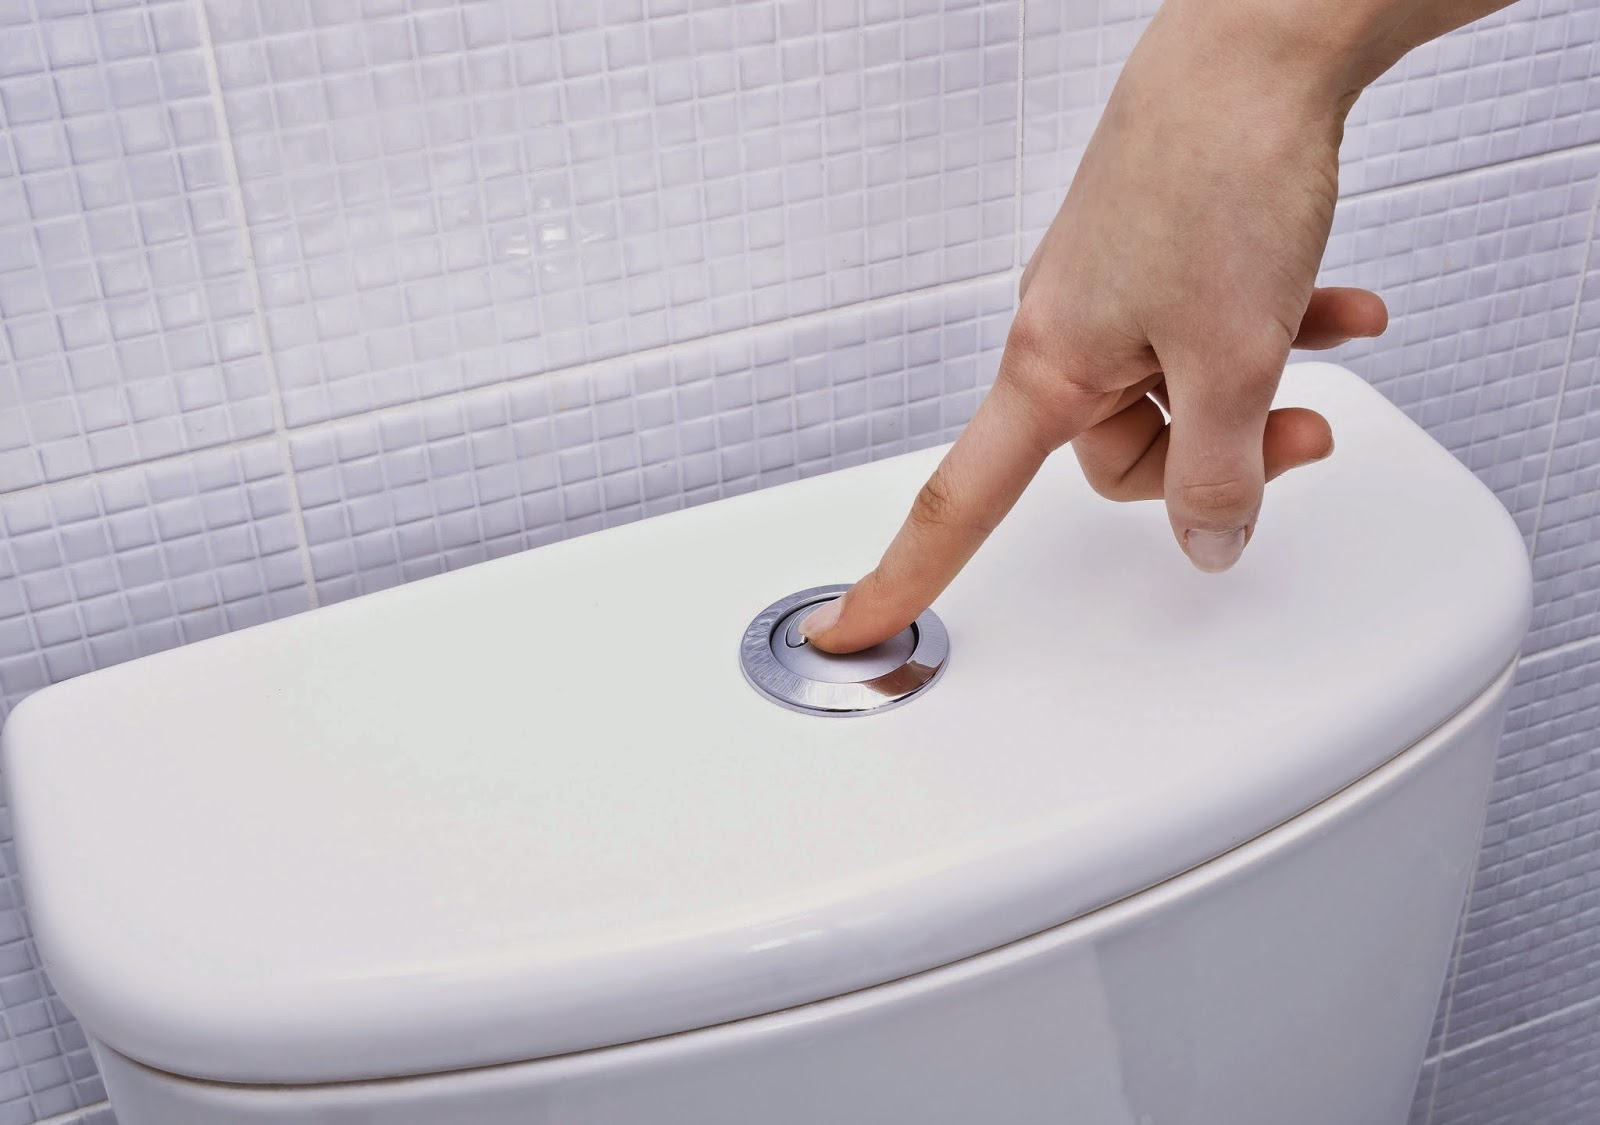 Ap Plumbing How Do You Know If Your Sewer Drain Is Clogged